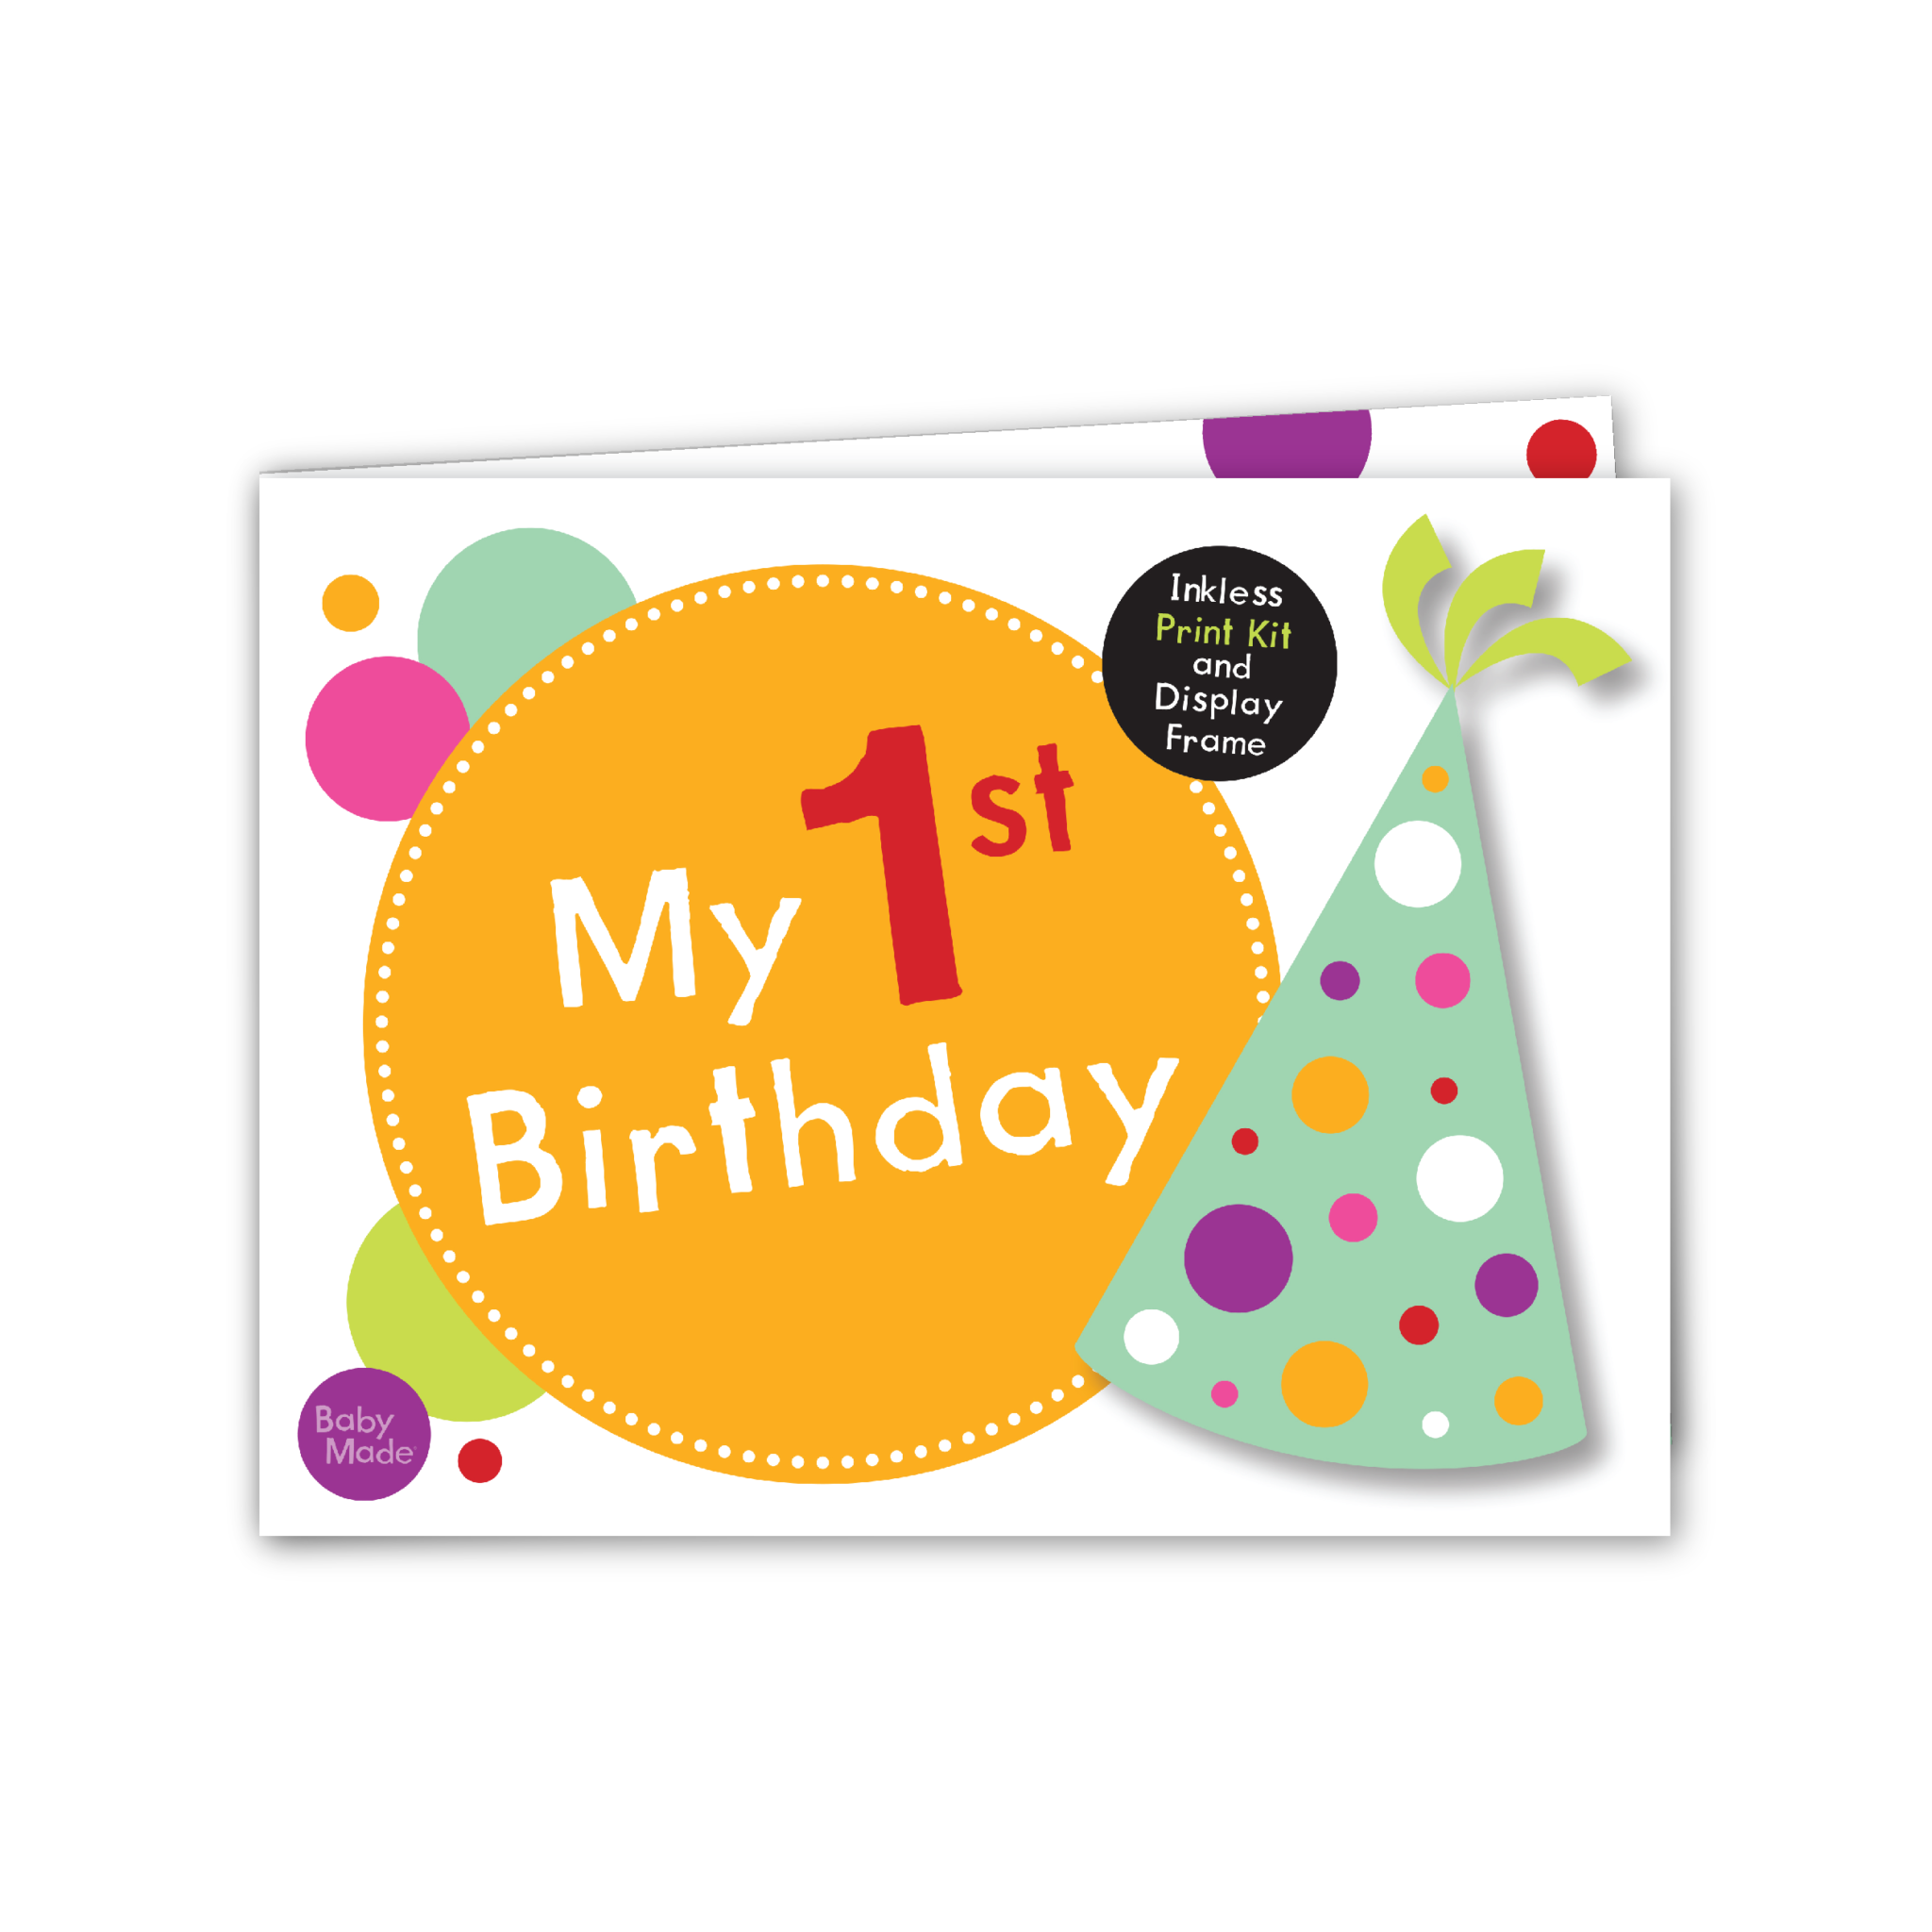 Keepsake 1st Birthday Gifts: 1 Inkless Wipe, 2 Specially